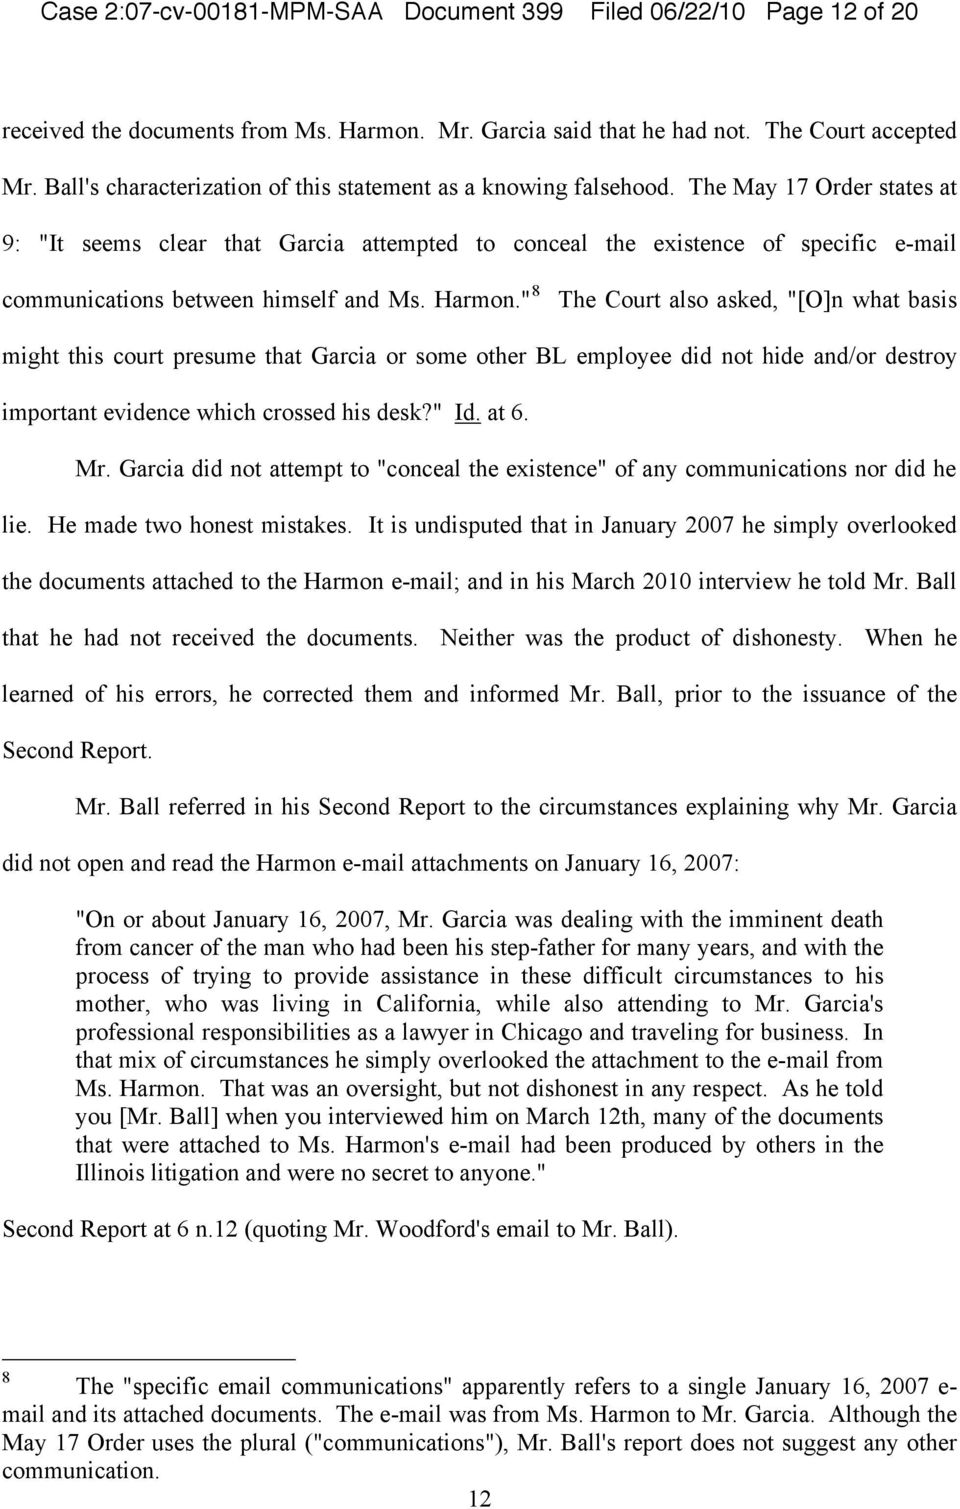 "The May 17 Order states at 9: ""It seems clear that Garcia attempted to conceal the existence of specific e-mail communications between himself and Ms. Harmon."